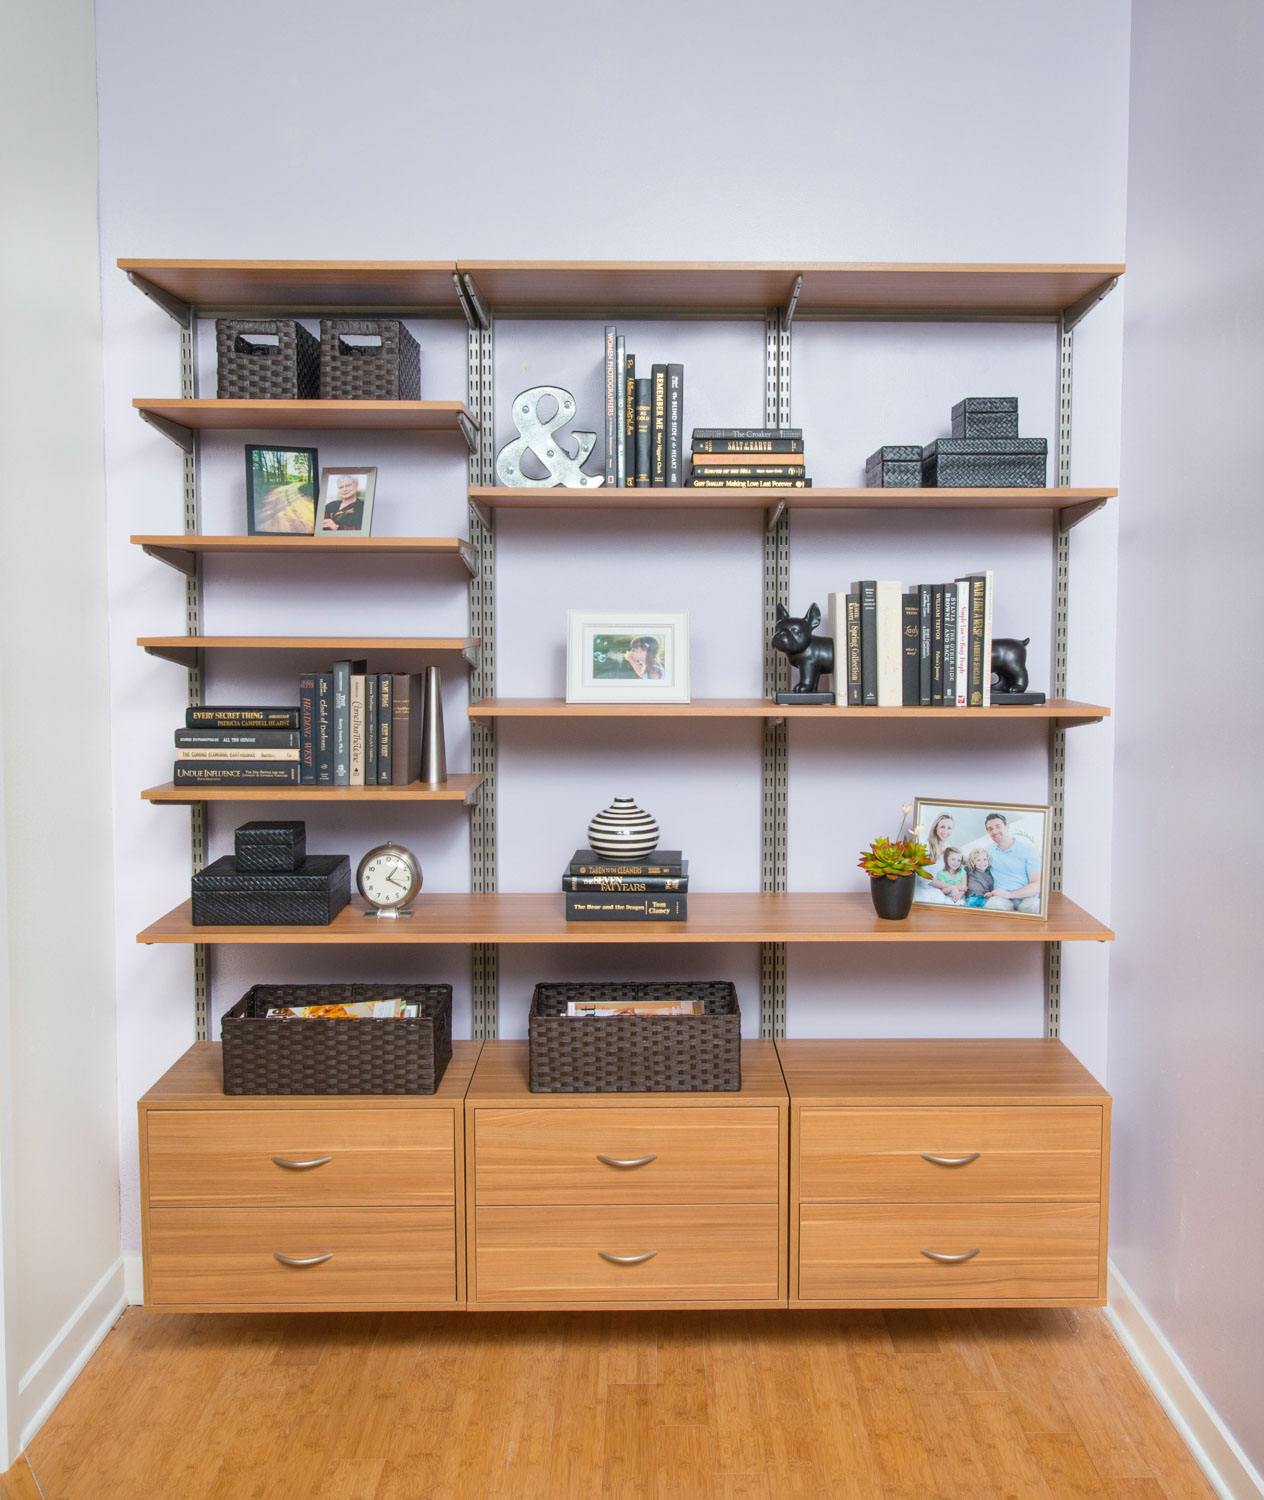 Organized living freedomrail adjustable shelving 18 more amipublicfo Image collections